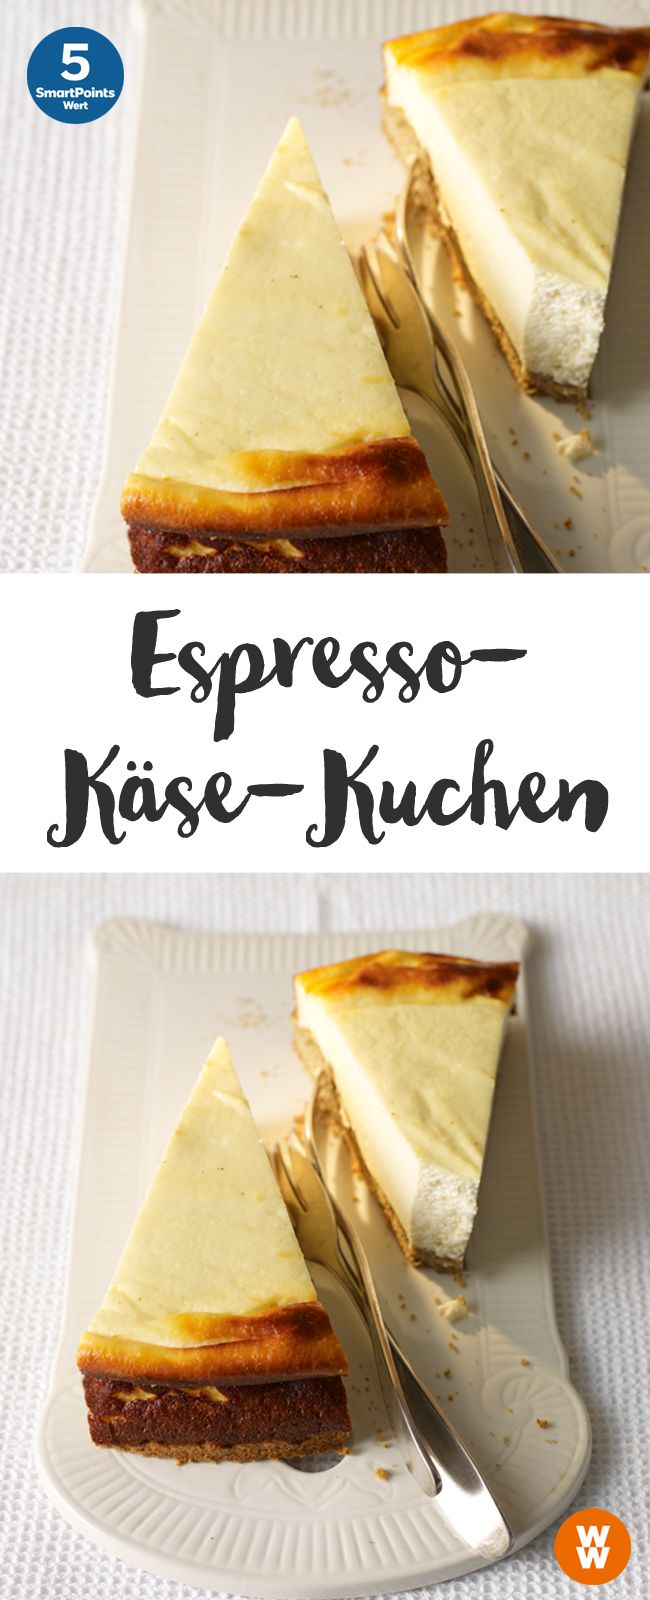 Espresso-Käse-Kuchen, Käsekuchen, Kuchen, Dessert | Weight Watchers